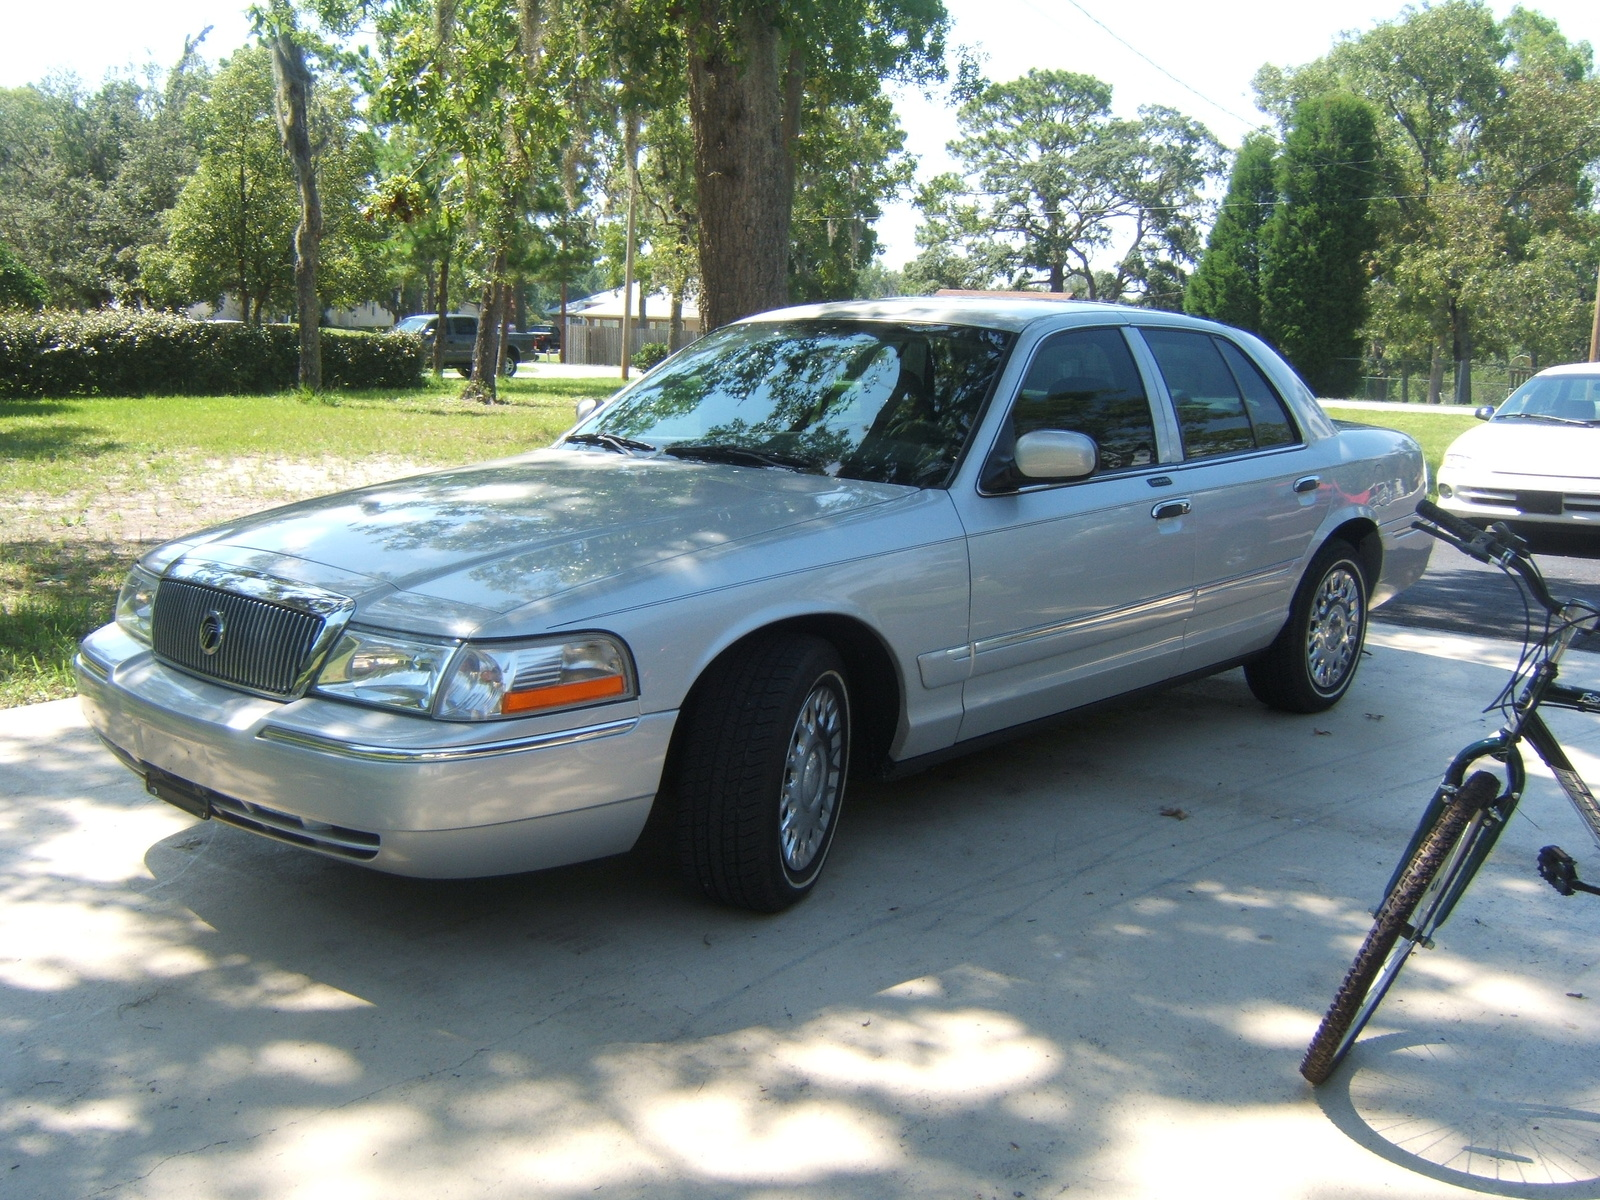 2003 Mercury Grand Marquis GS picture